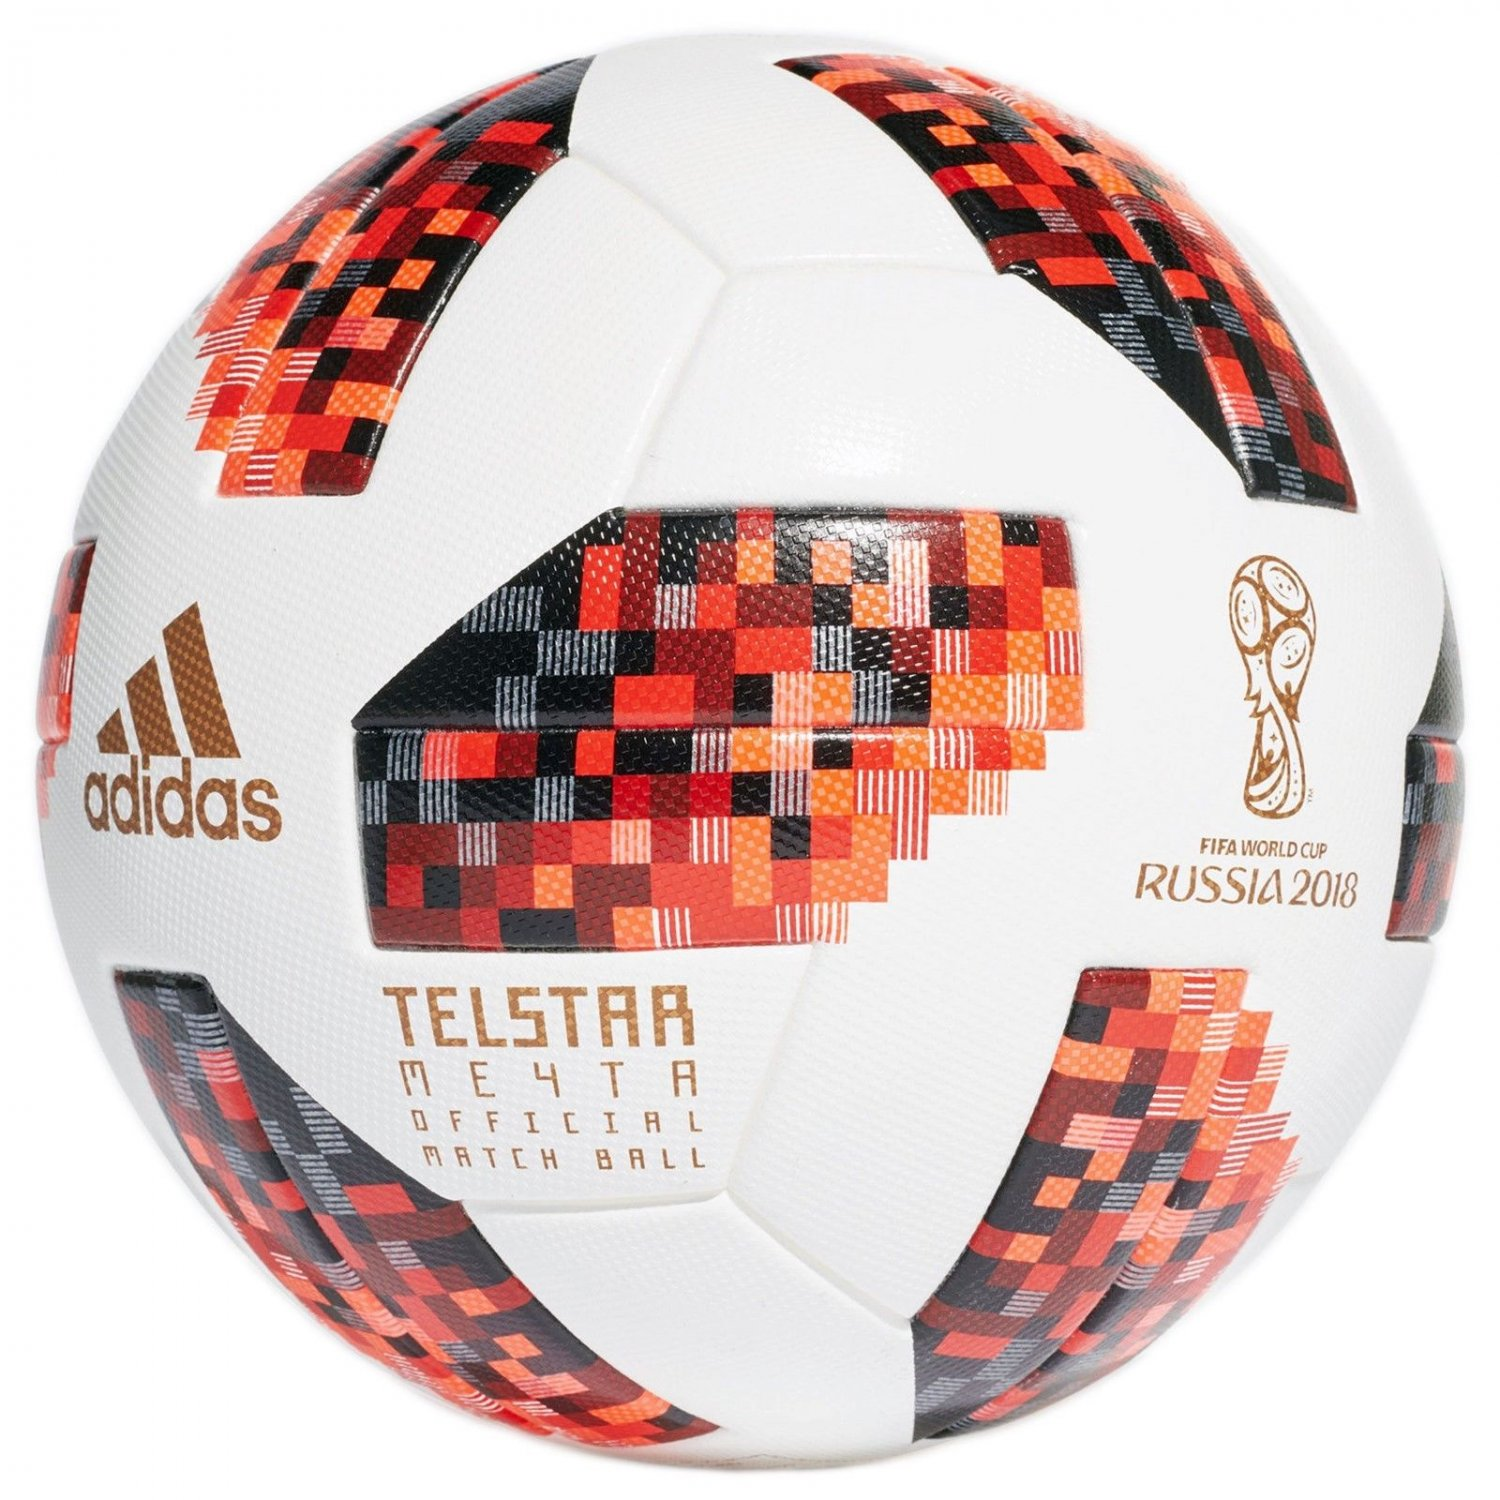 Adidas Official Ball Of FIFA World Cup 2018 Telstar 18 Russia Size 5 Red And White